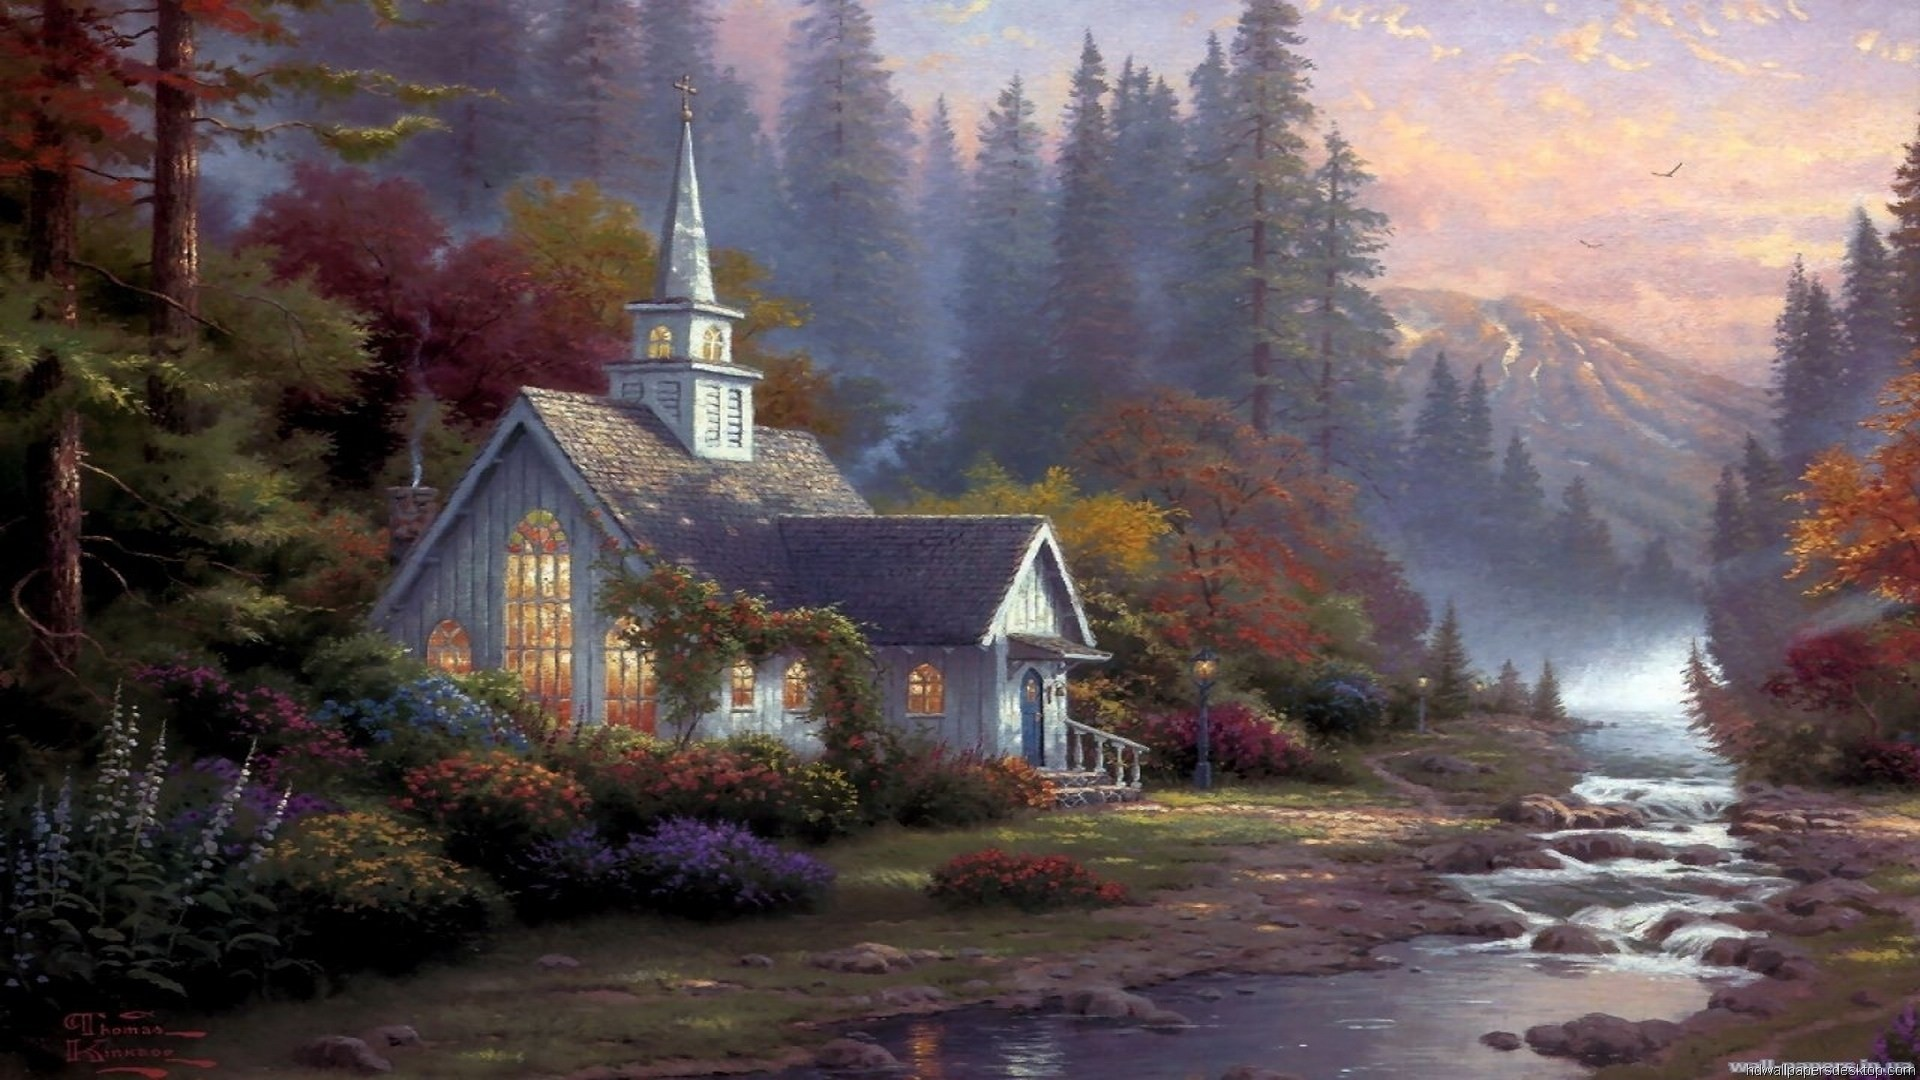 … Great Thomas Kinkade Wallpaper Download free wallpapers and desktop  backgrounds in a variety of screen resolutions